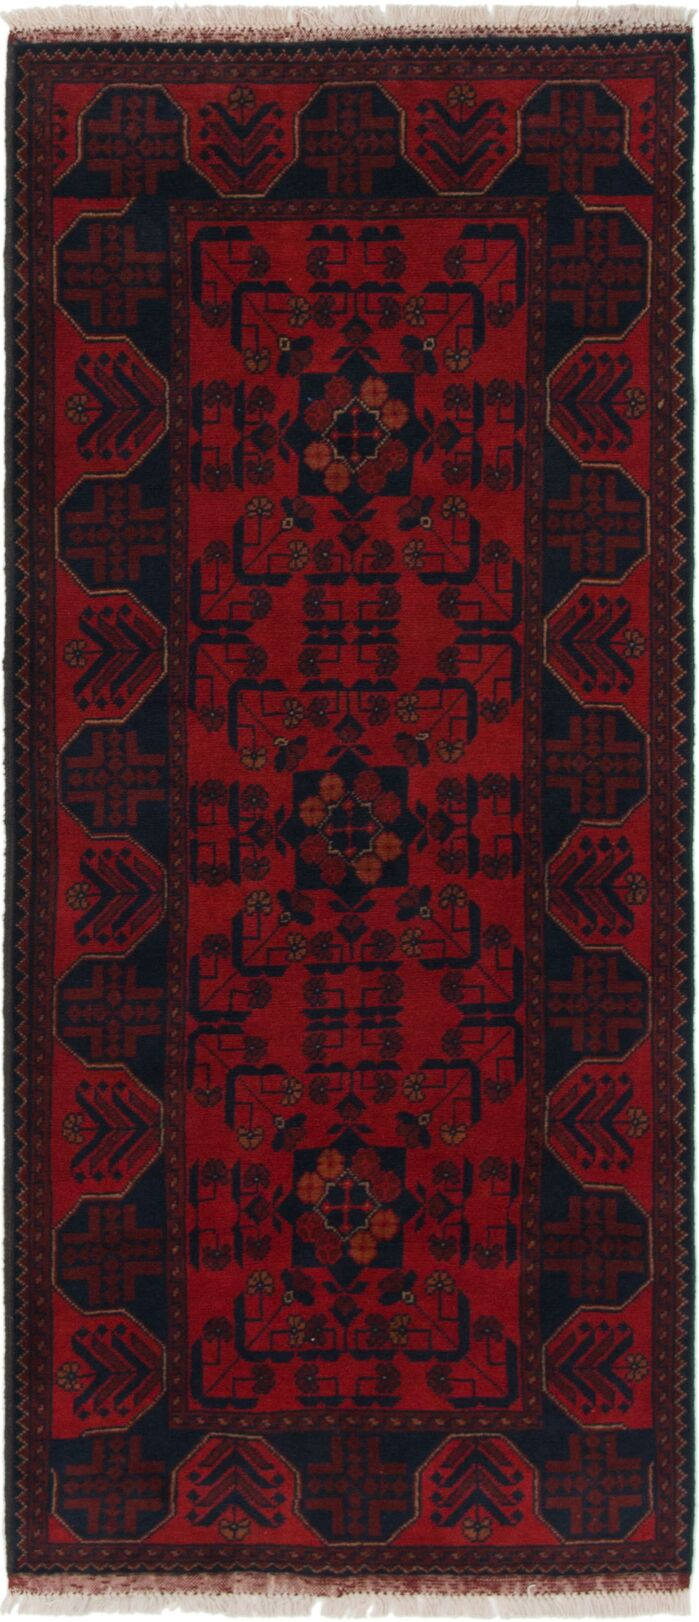 Area Rugs One Of A Kind Auxvasse Hand Knotted Wool Red Blue Area Rug